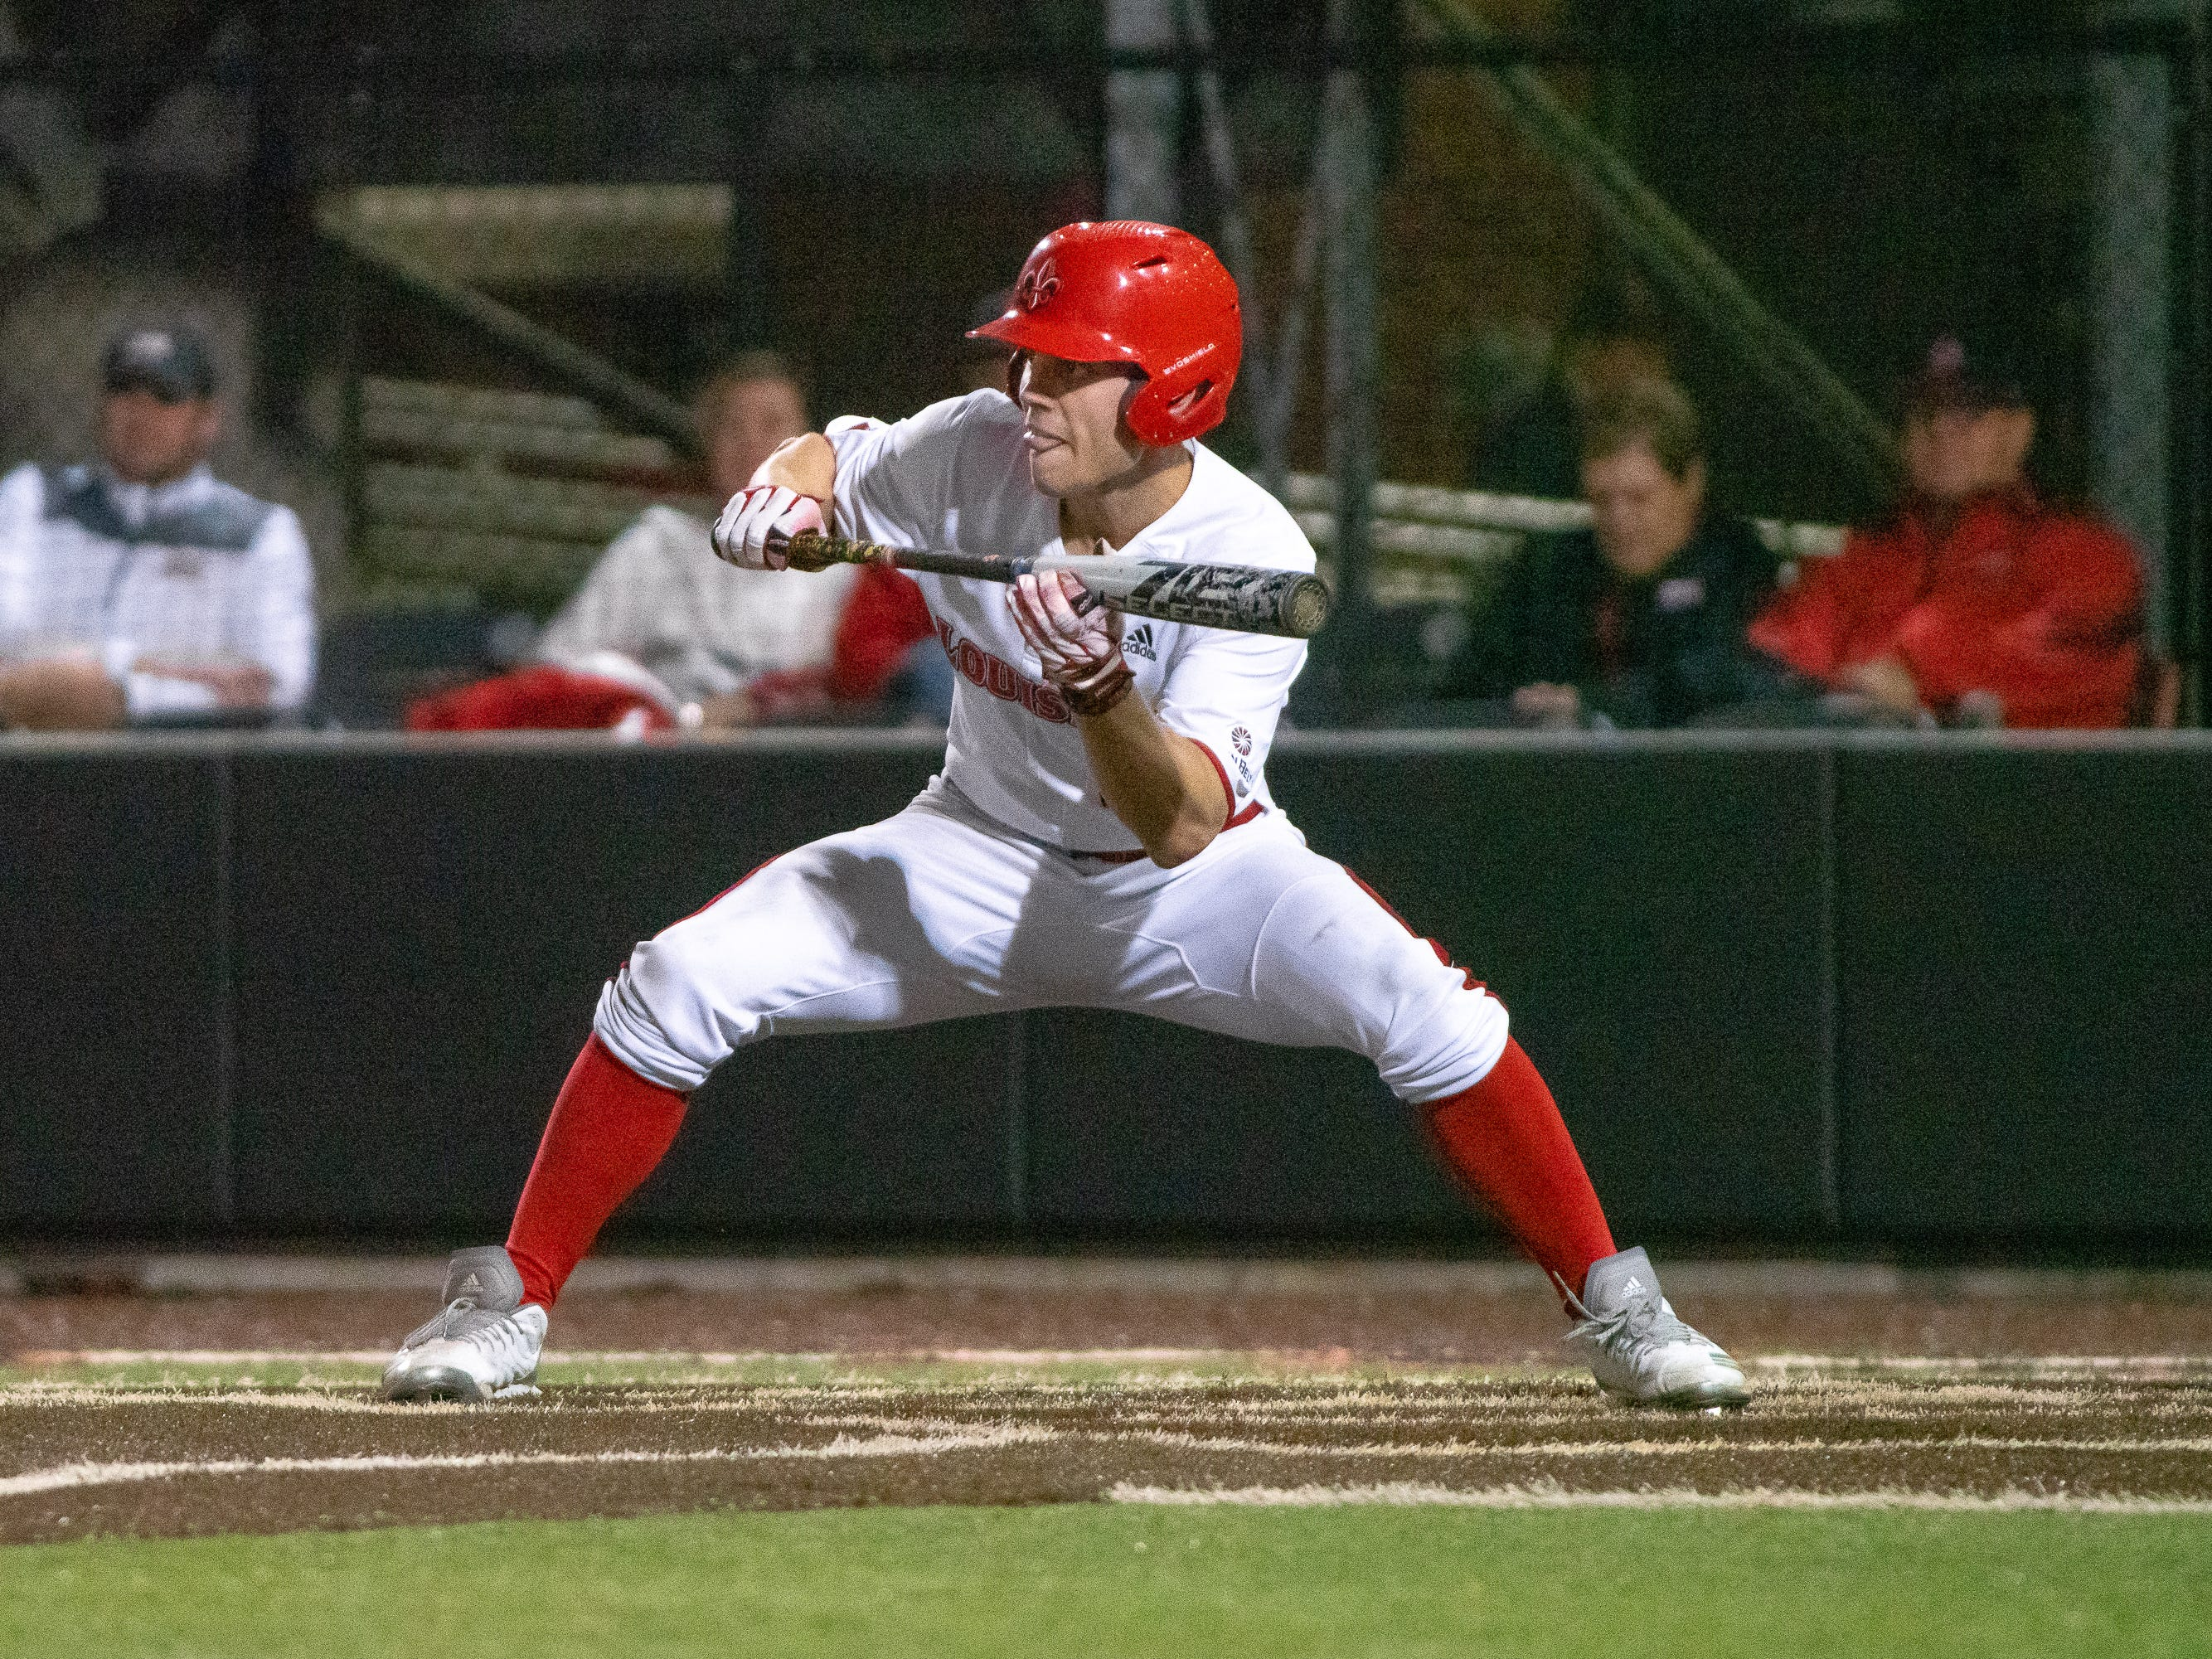 """UL's Hunter Kasuls prepares to bunt the ball as the Ragin' Cajuns take on the Southern Miss Golden Eagles at M.L. """"Tigue"""" Moore Field on Wednesday, March 13, 2019."""